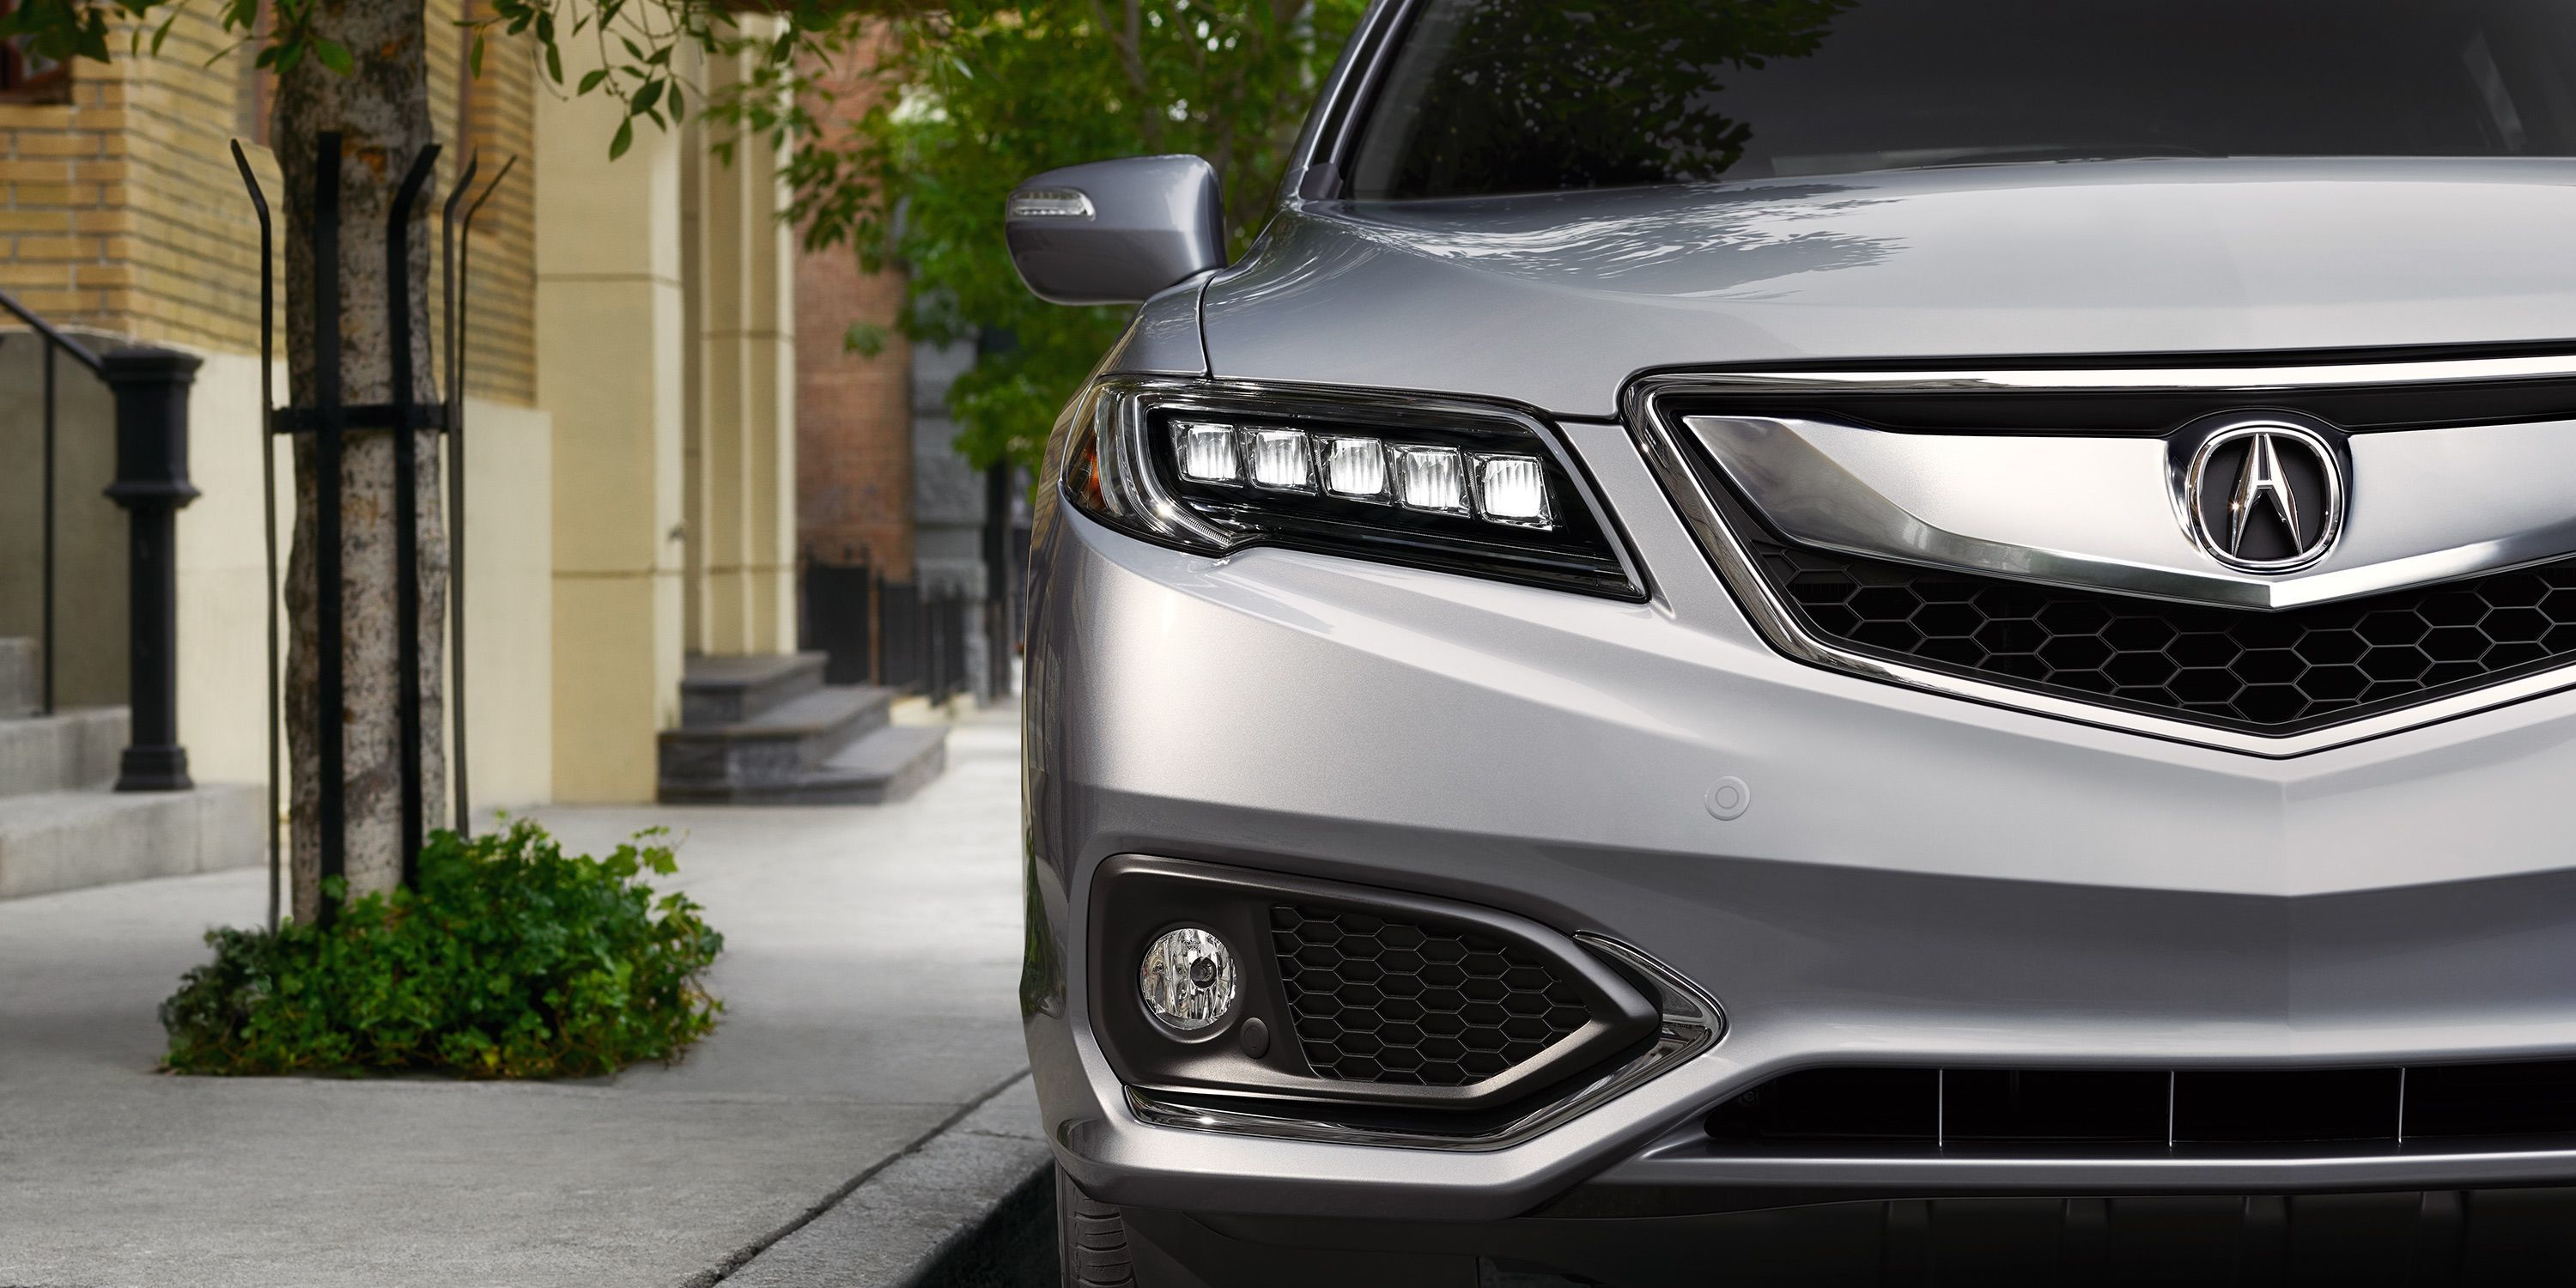 new service specials in acura best car dealer peabody used honda ma of pict boston glamours and